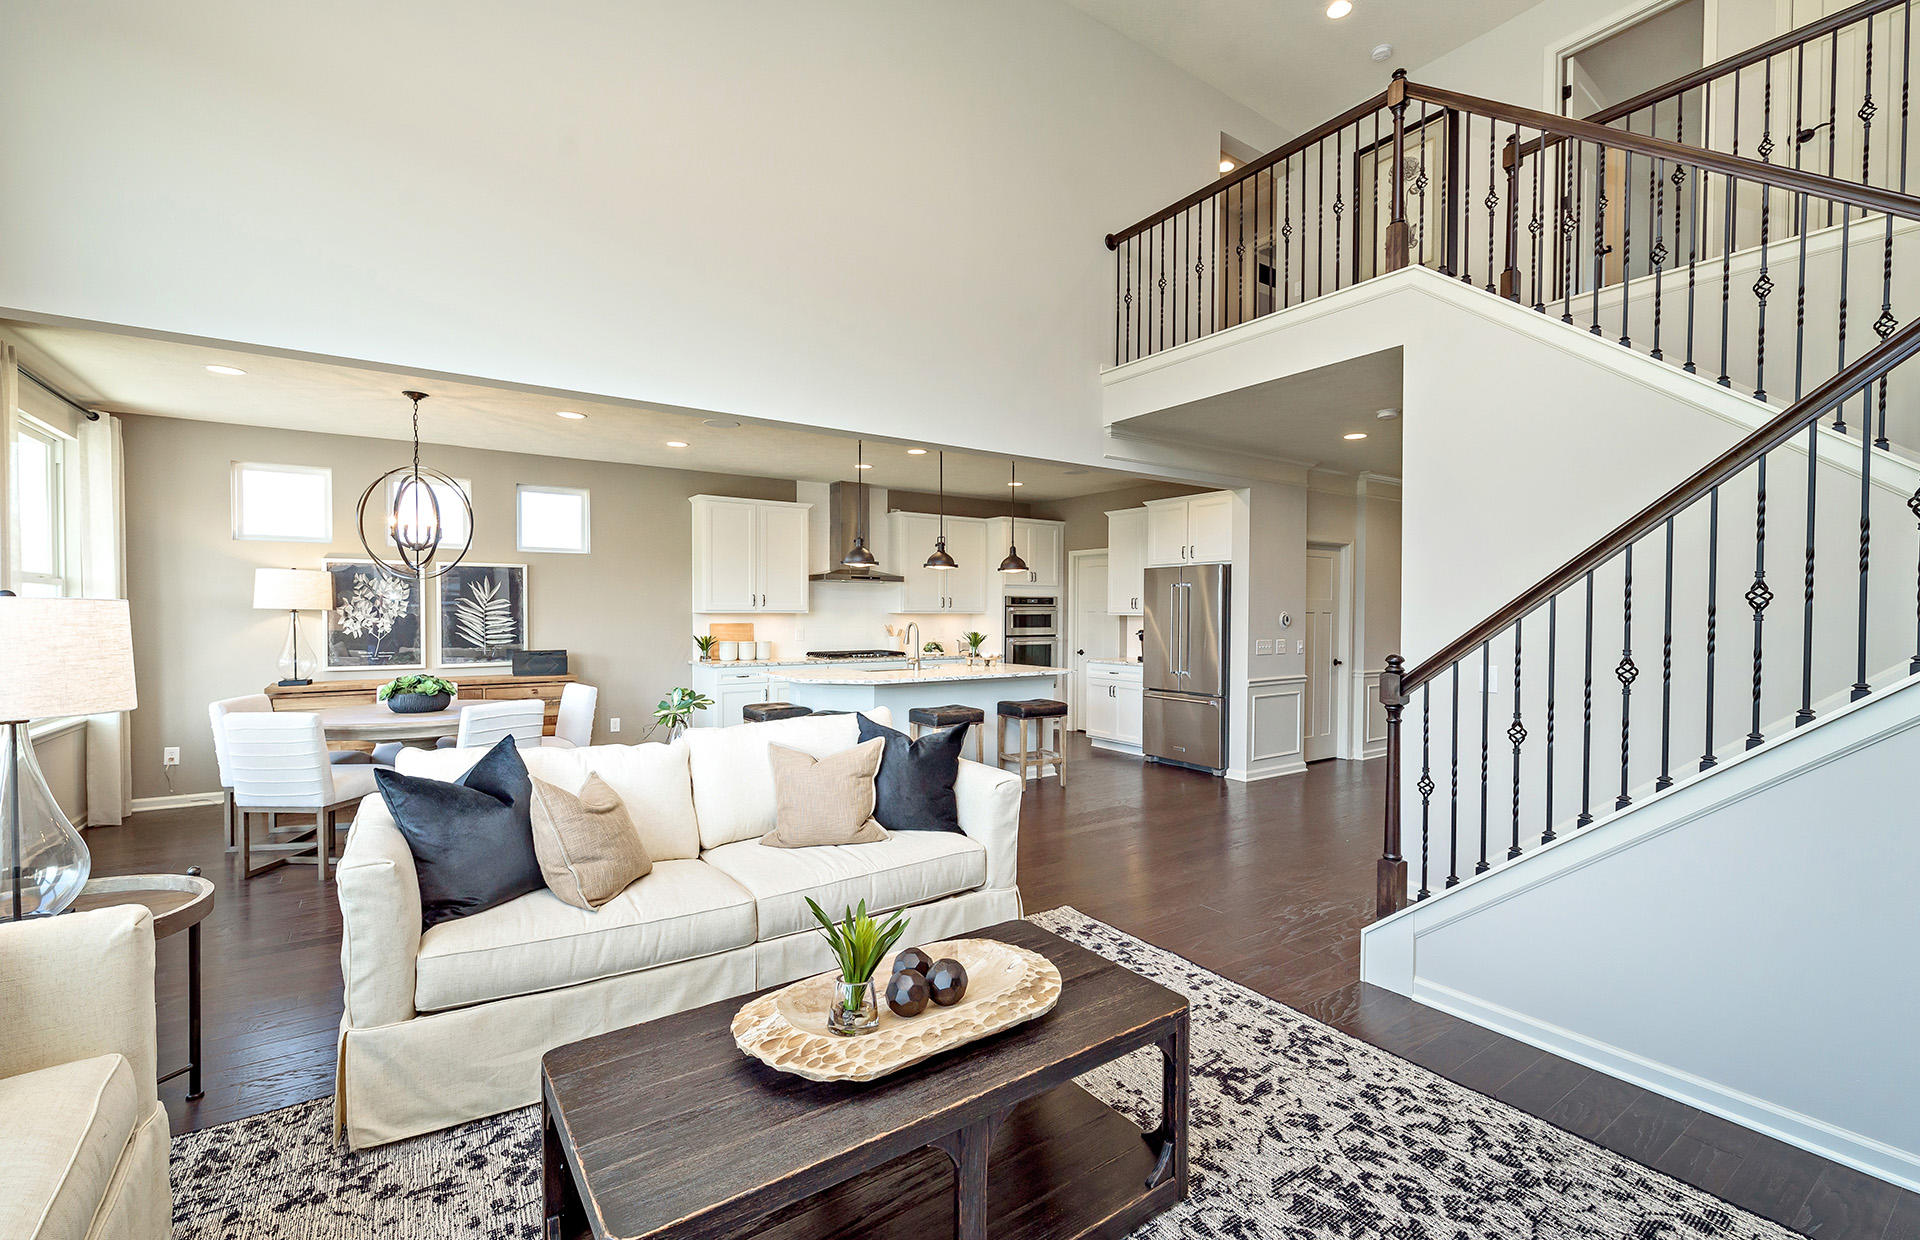 Wood Hollow by Pulte Homes image 4